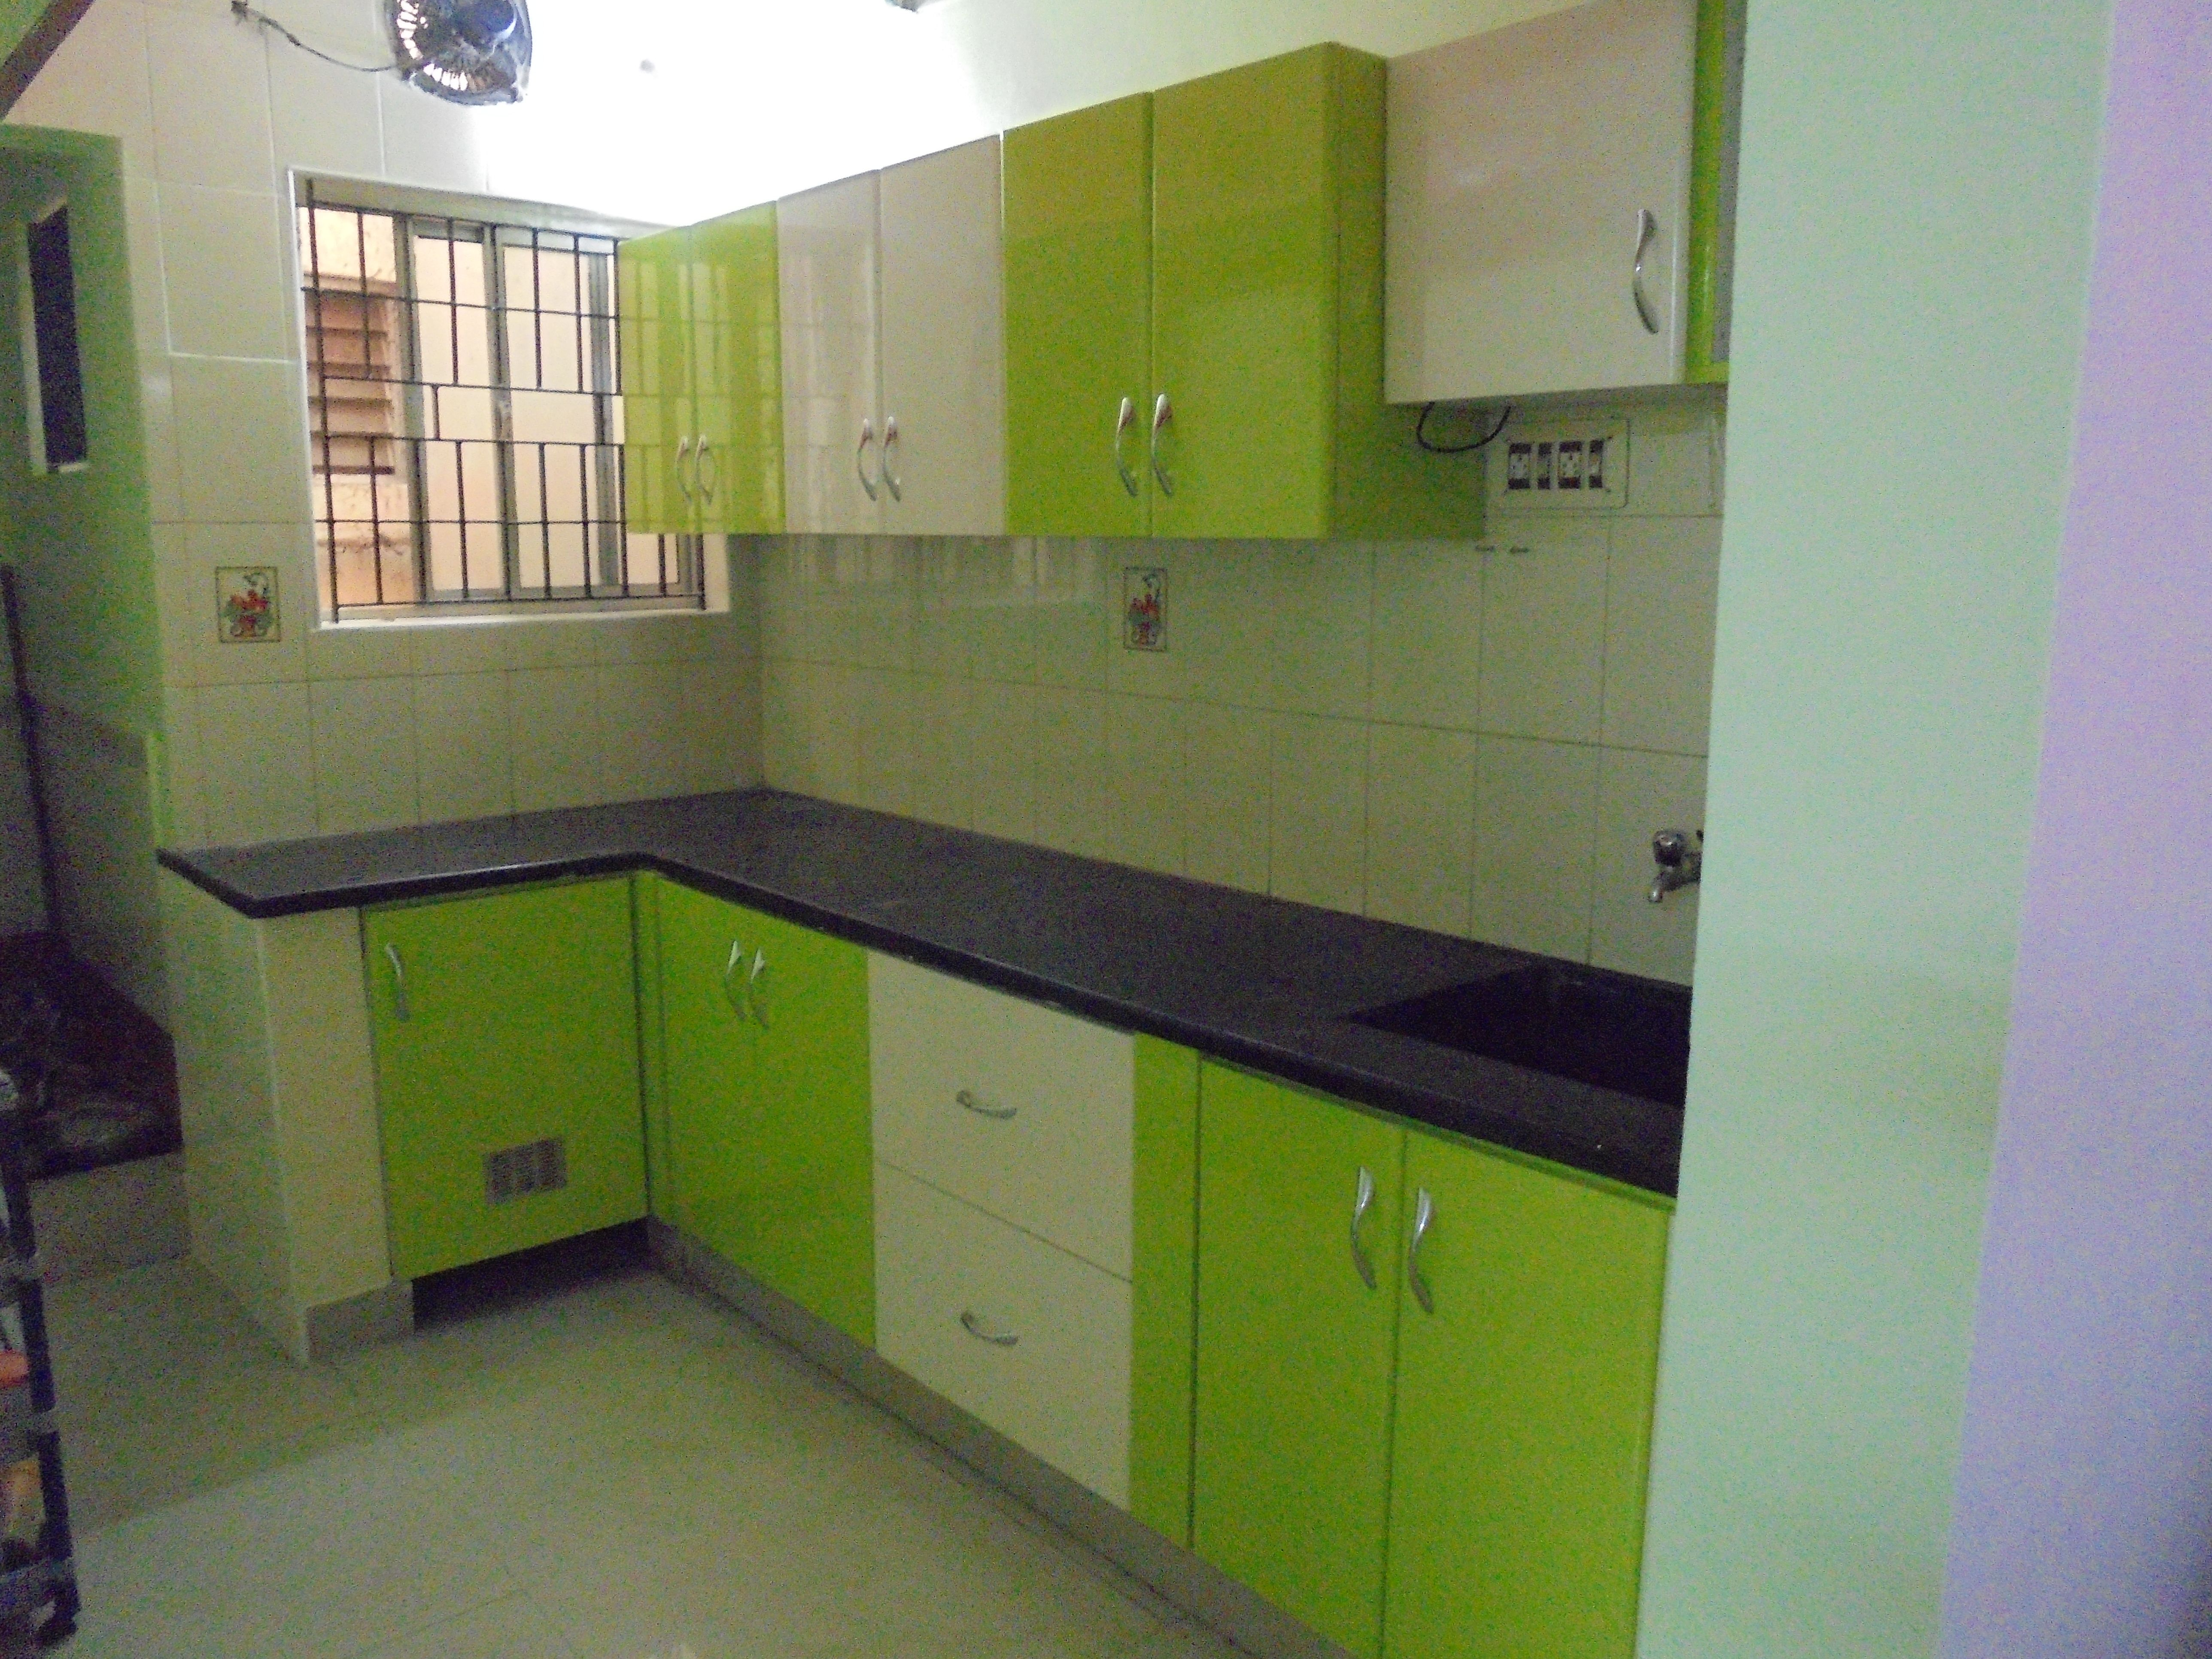 Modular Kitchen Chennai. Http://blueinteriordesigns.com 9840615677 /  9884815677.